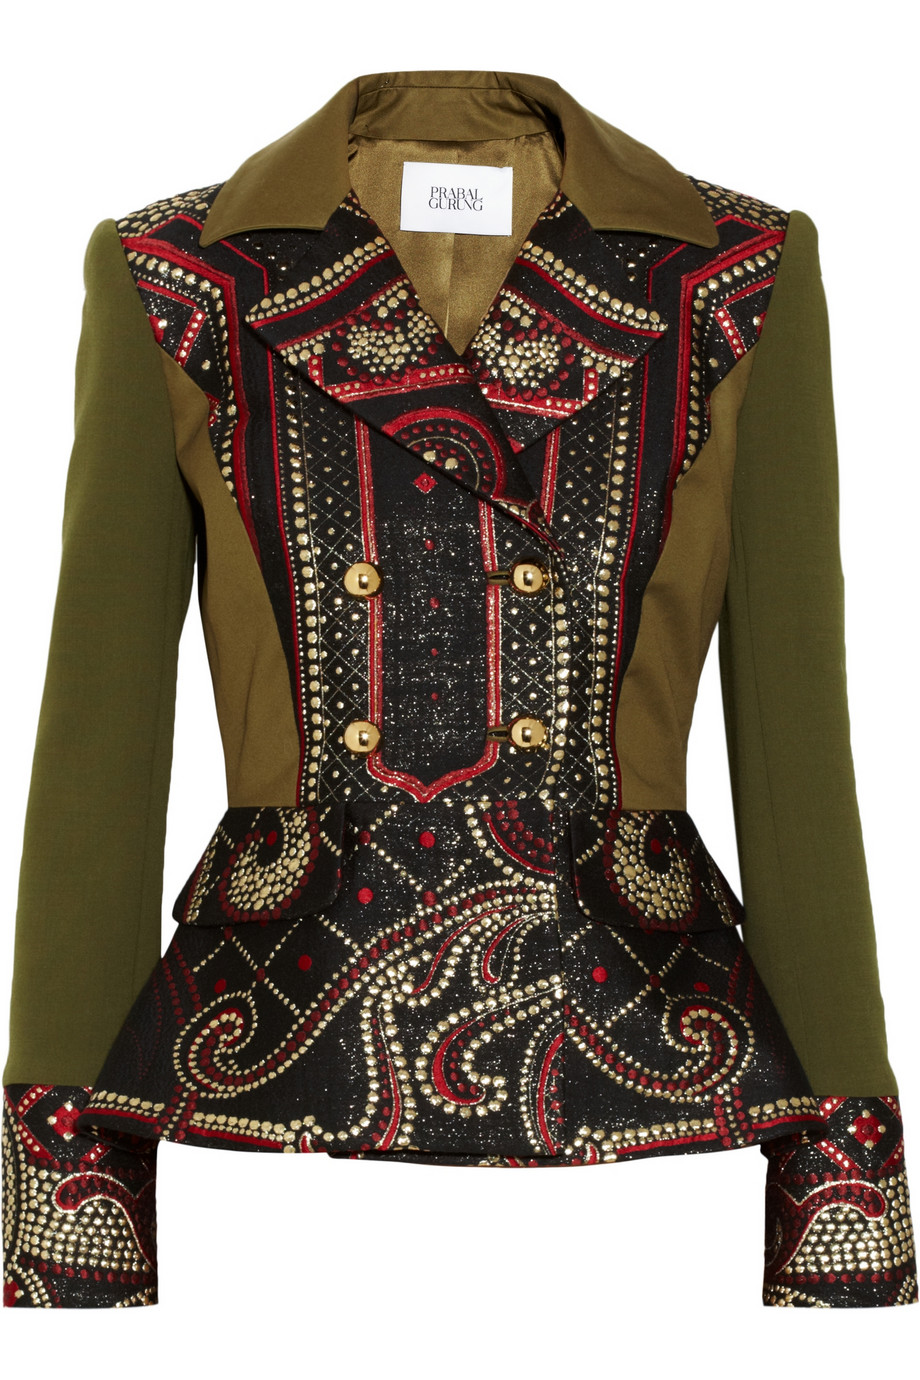 Prabal Gurung Metallic brocade and stretch-wool peplum jacket – 70% at THE OUTNET.COM